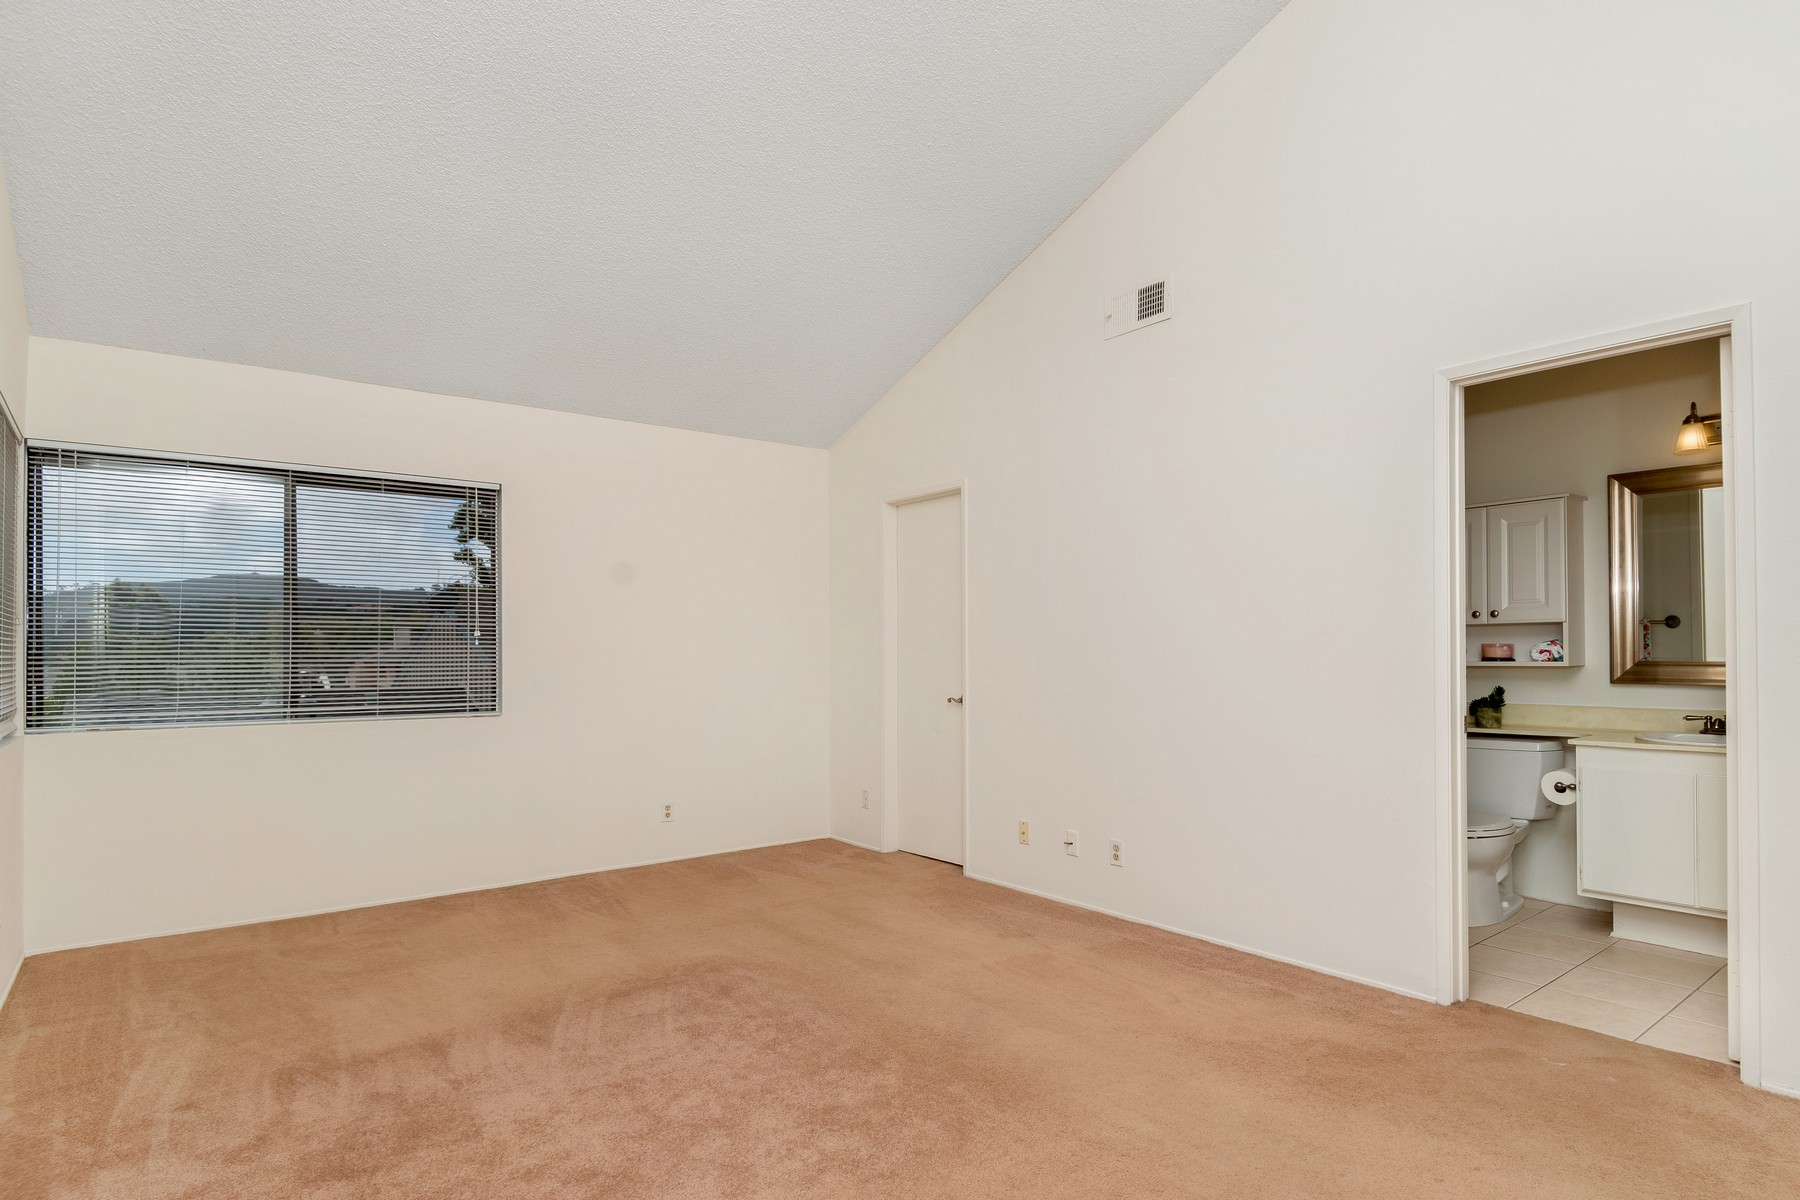 Additional photo for property listing at 8265 Via Mallorca  La Jolla, California 92037 United States